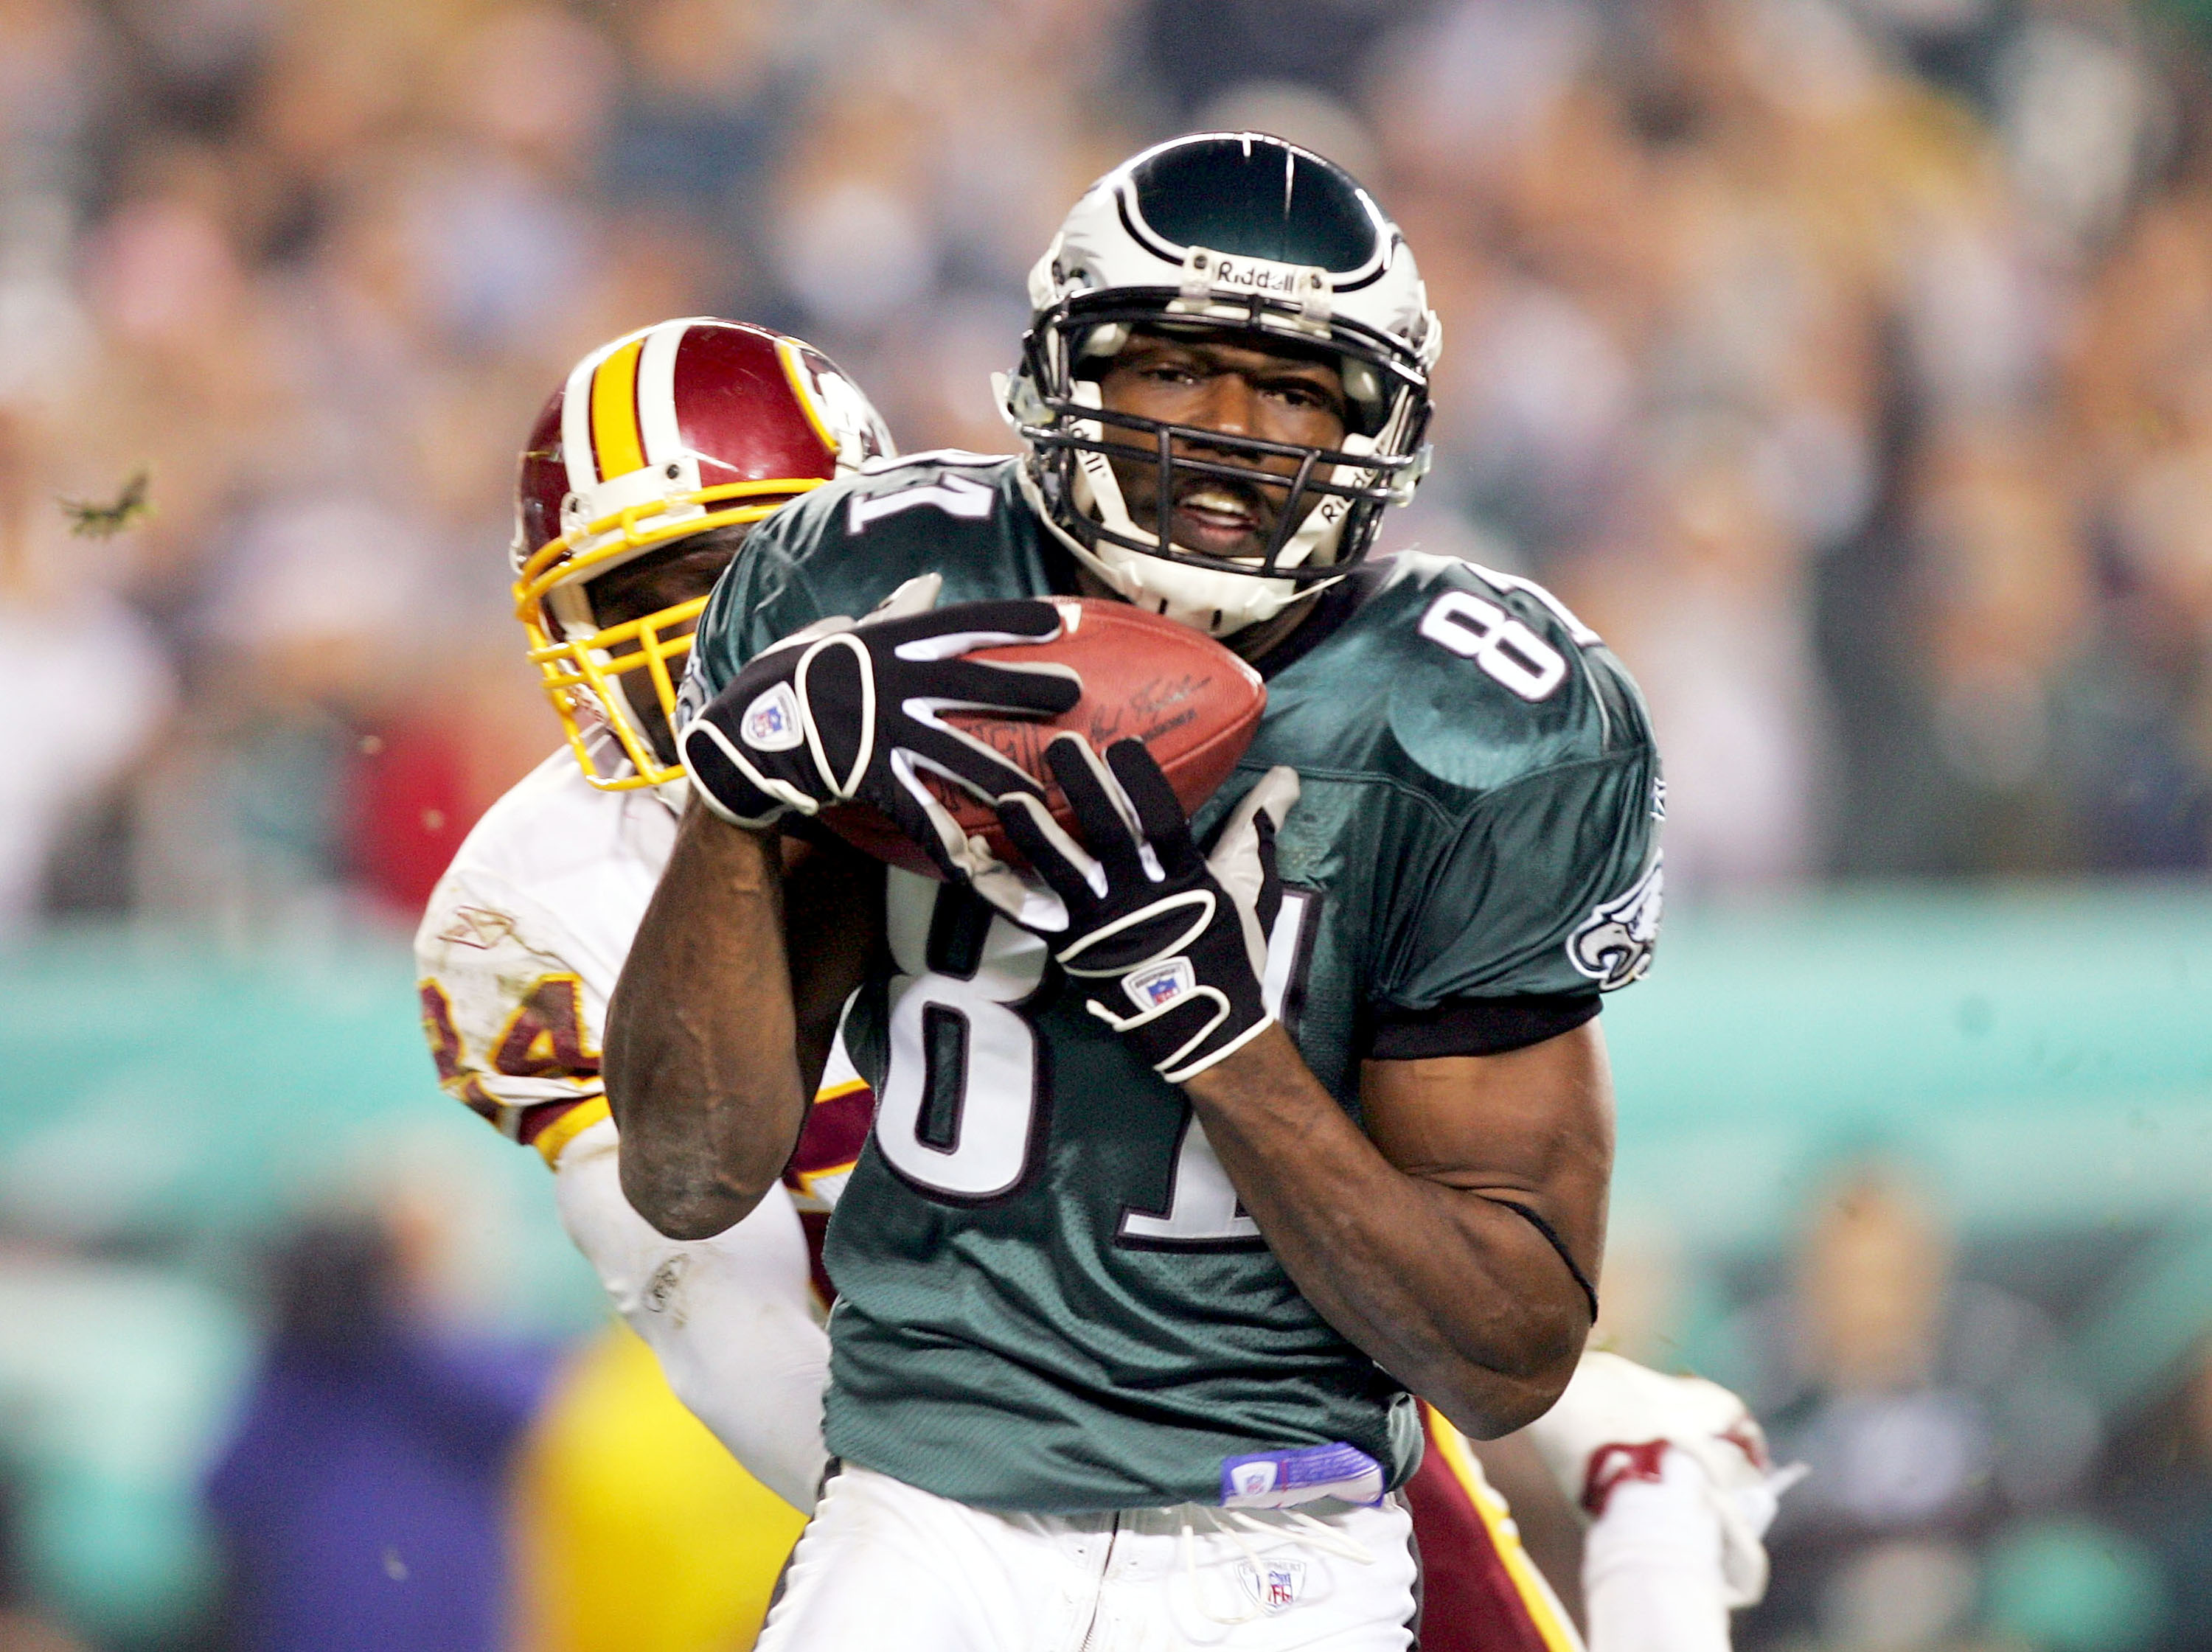 PHILADELPHIA - NOVEMBER 21:  Terrell Owens #81 of the Philadelphia Eagles catches the ball in front of Shawn Springs #24 of the Washington Redskins to score a touchdown in the third quarter at Lincoln Financial Field on November 21, 2004 in Philadelphia,